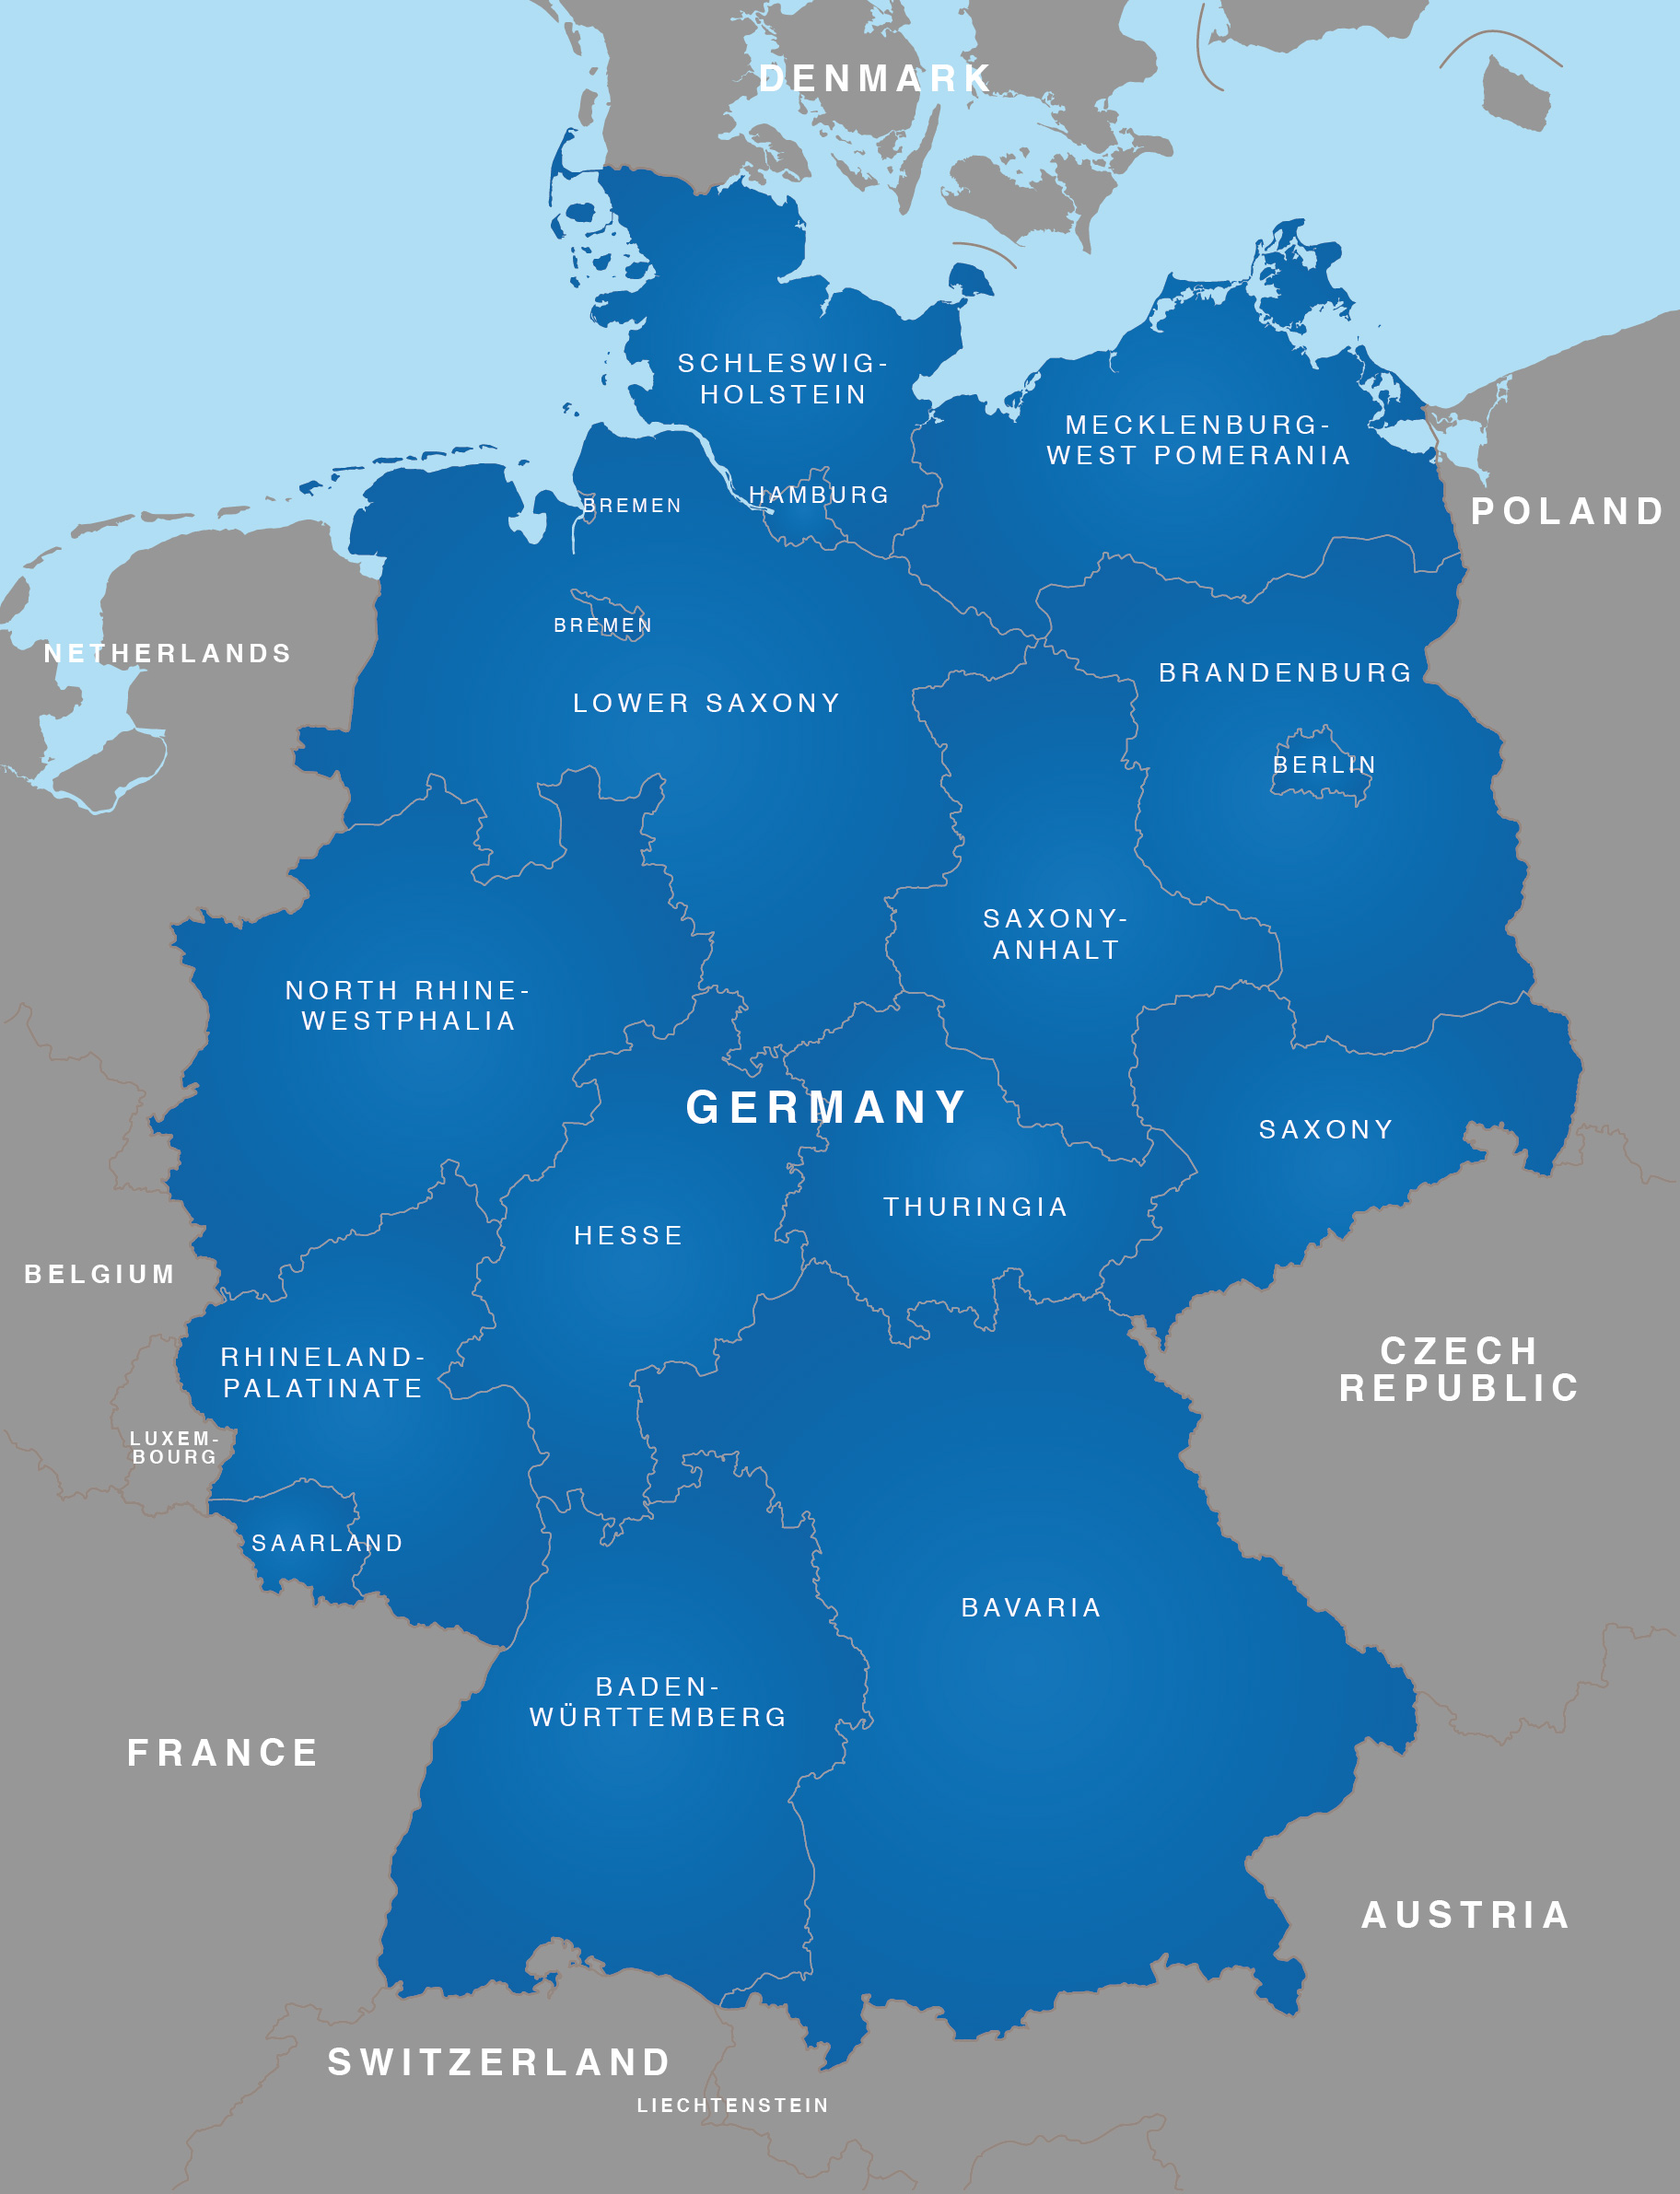 Regions Of Germany Map.Map Of Germany German States Bundeslander Maproom